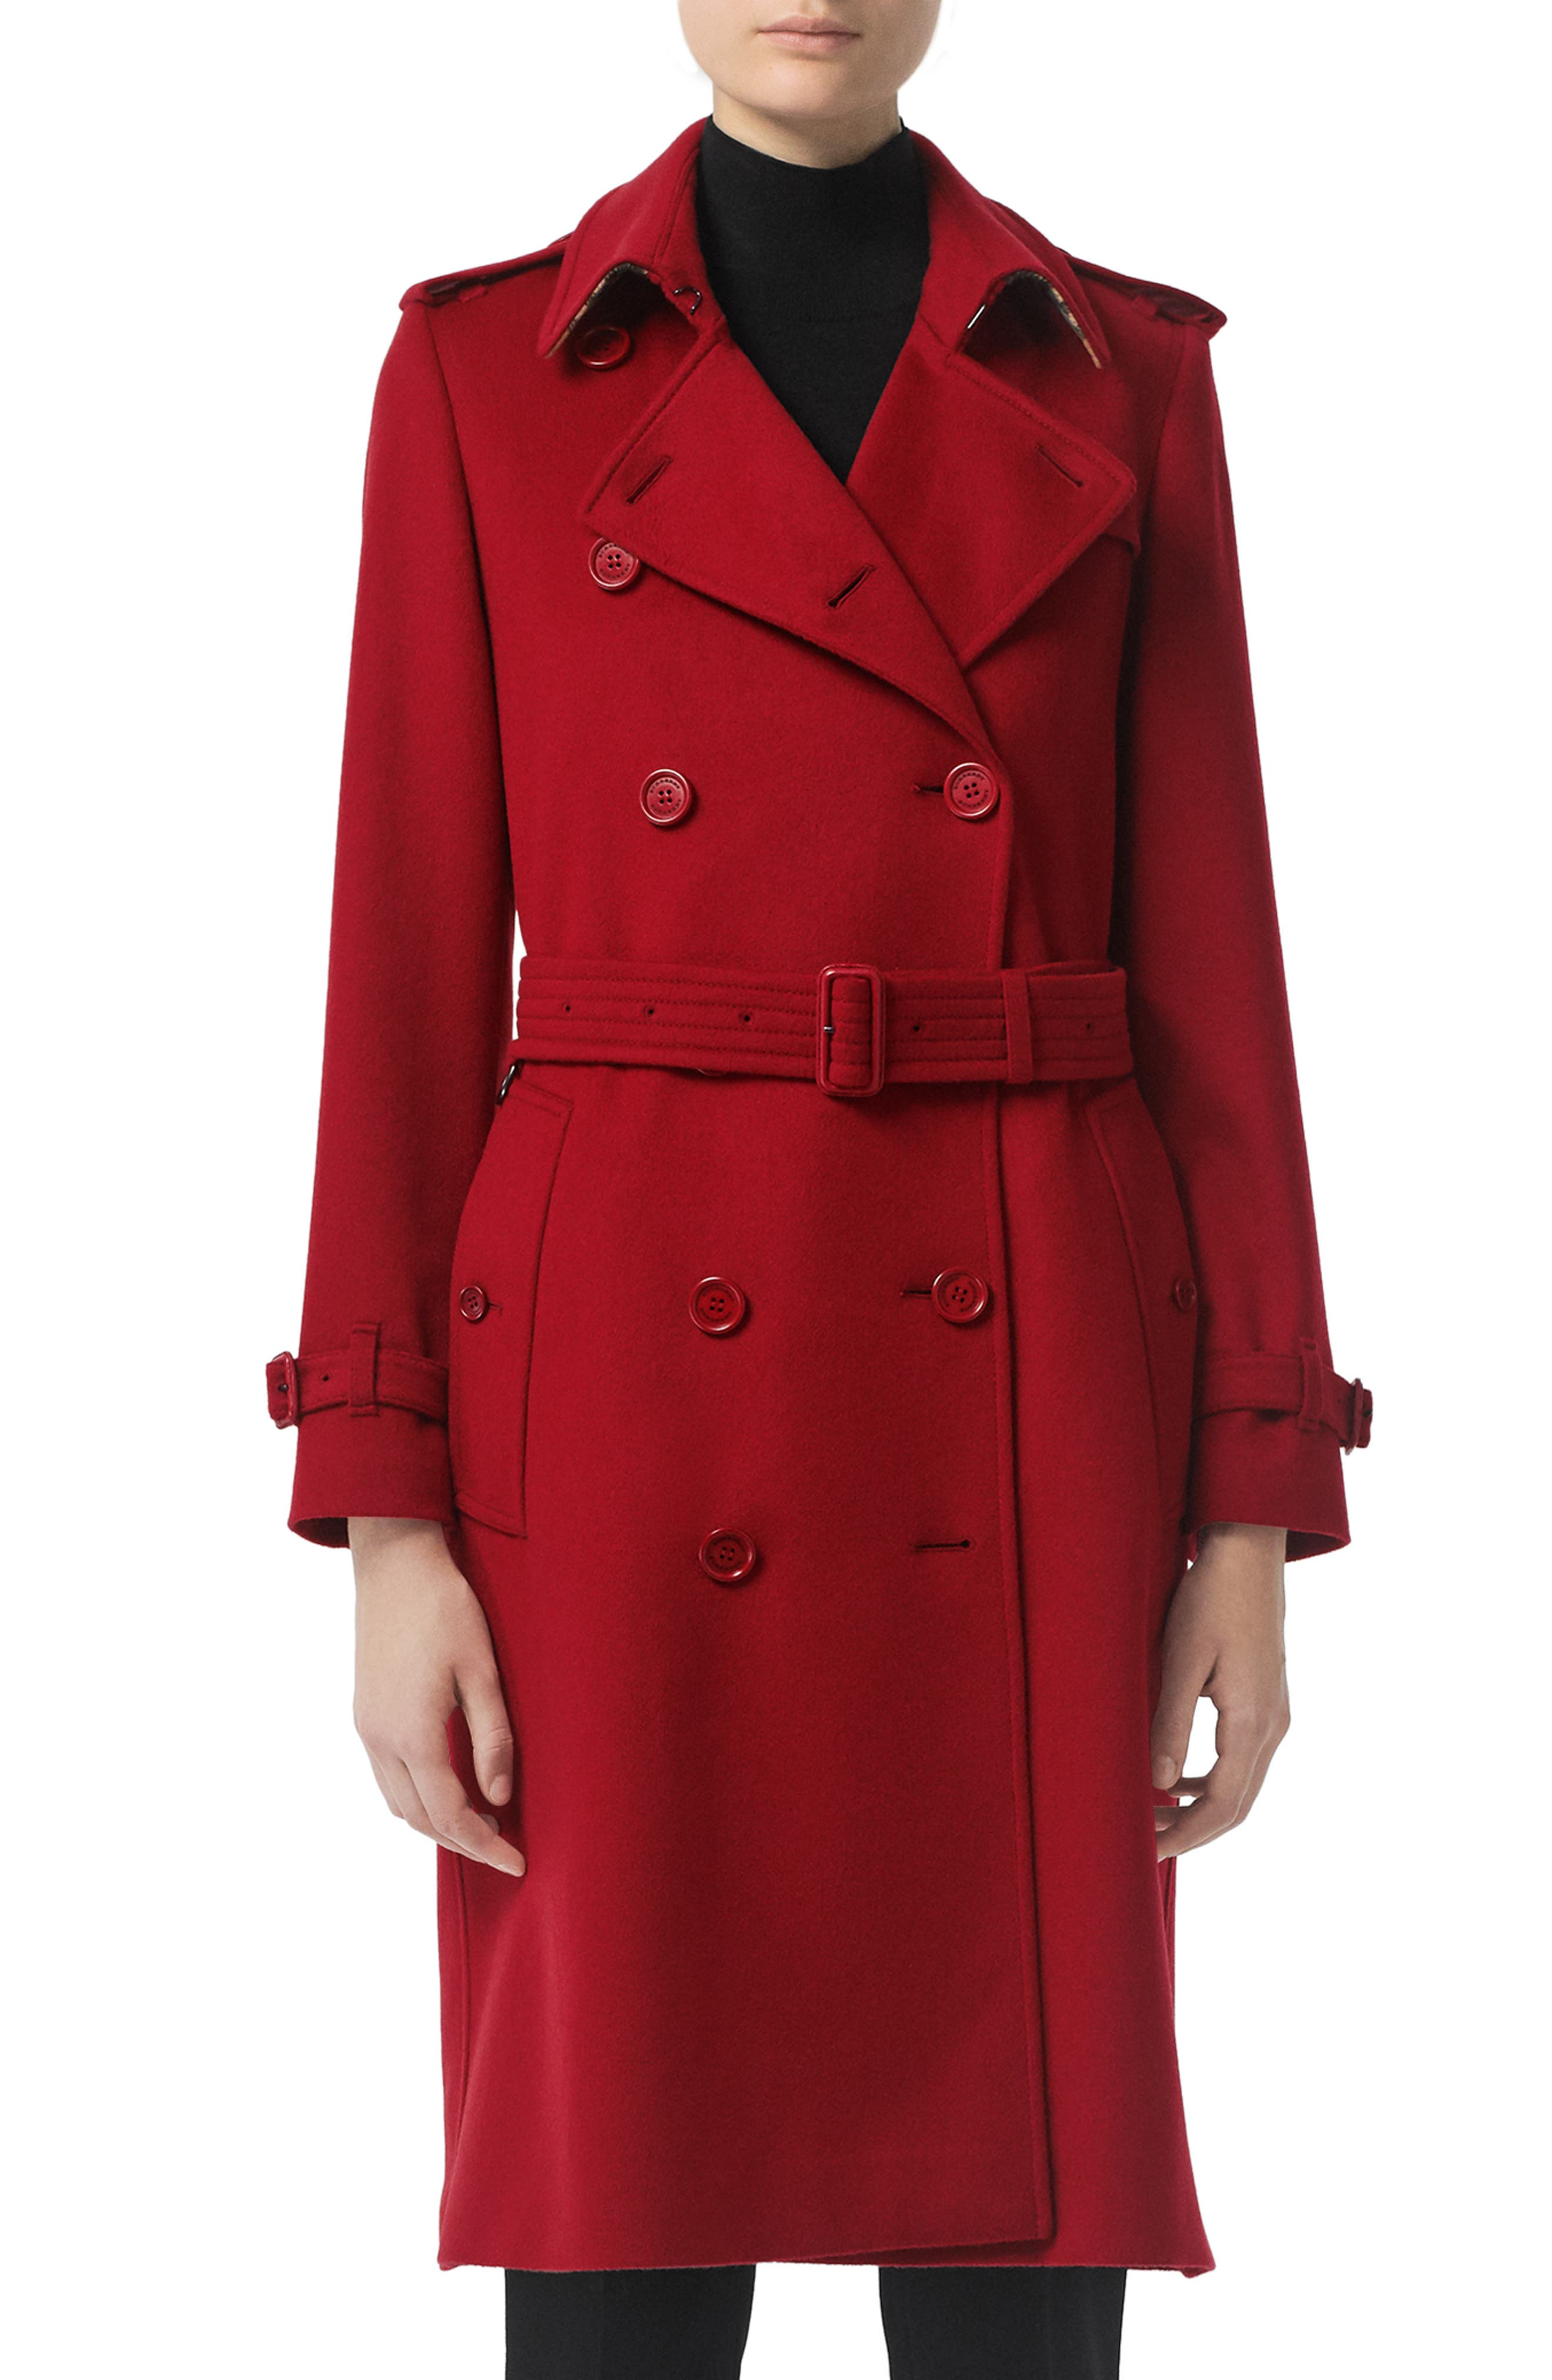 Kensington Cashmere Trench Coat,                             Main thumbnail 1, color,                             PARADE RED